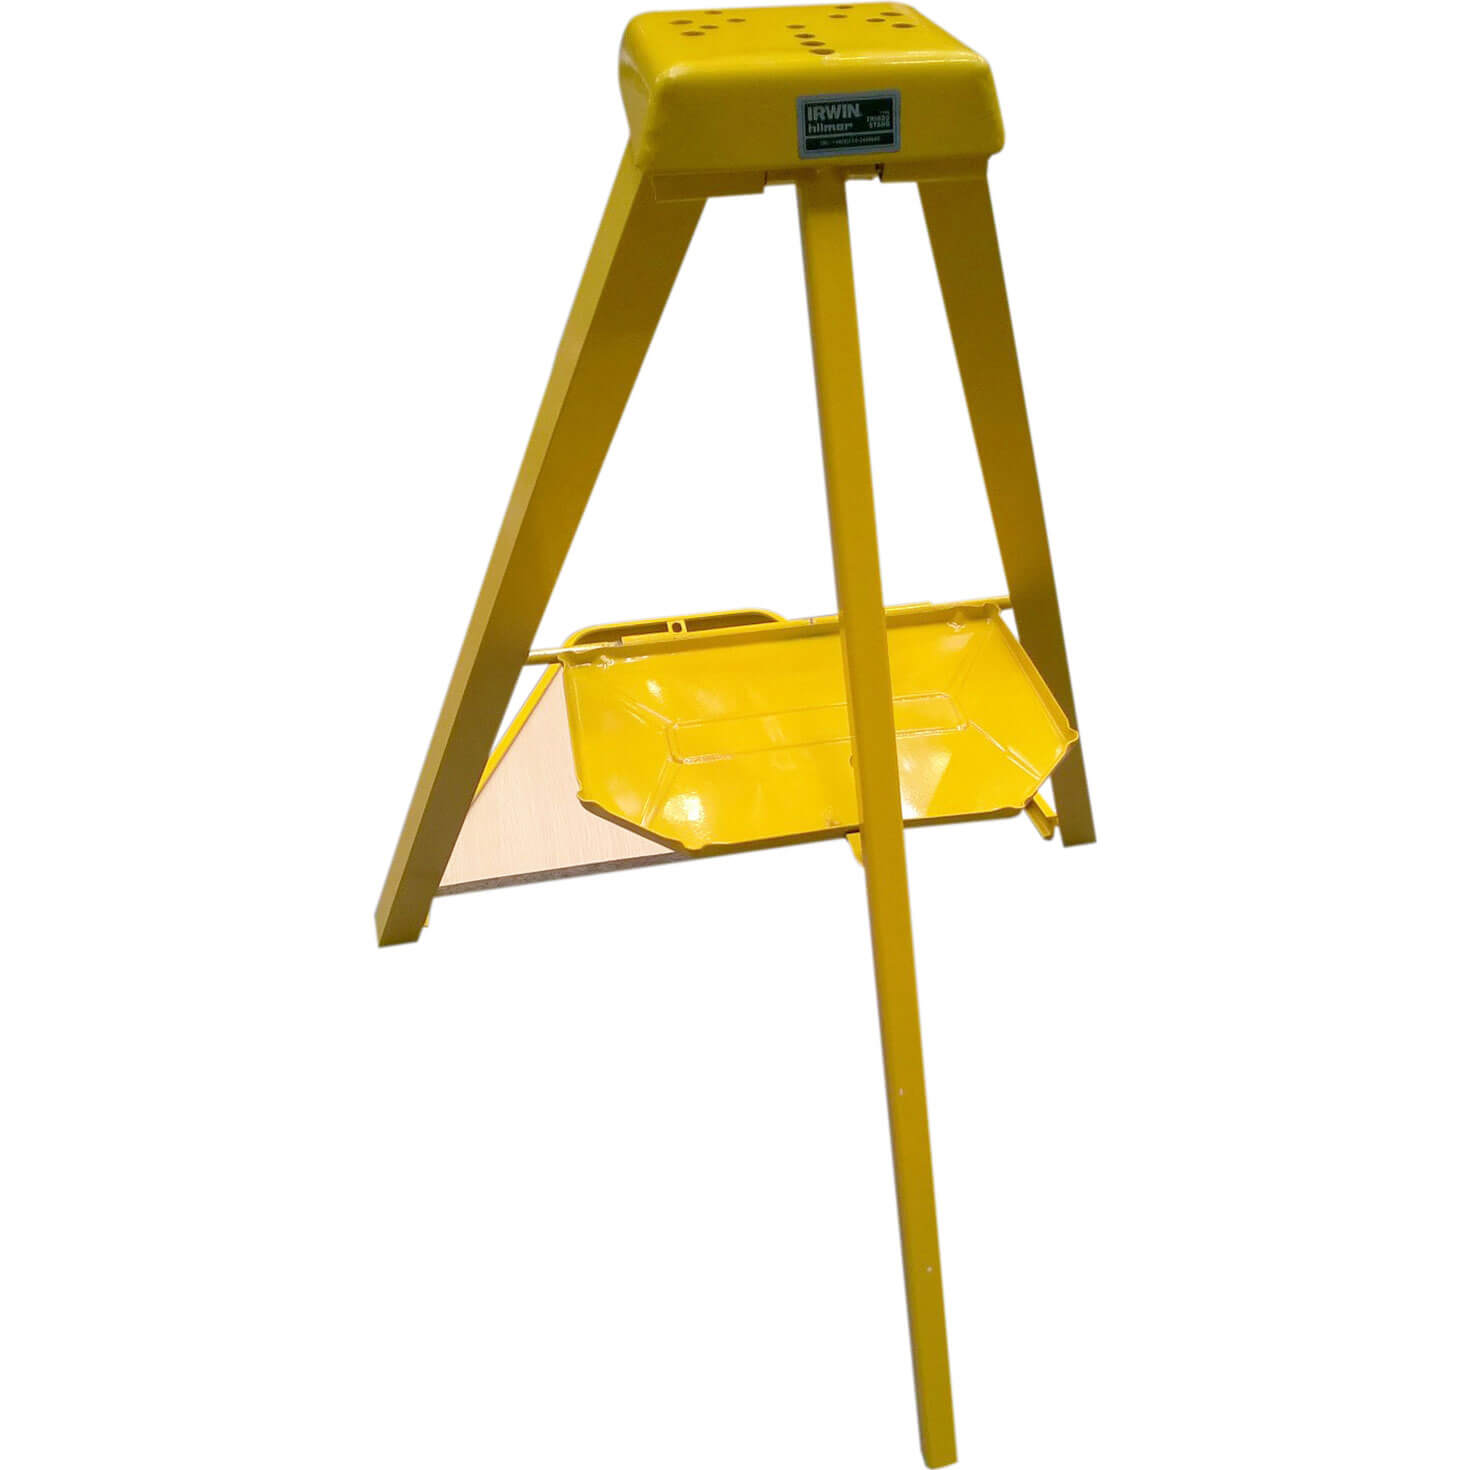 Image of Record TS10 Vice Tripod Stand